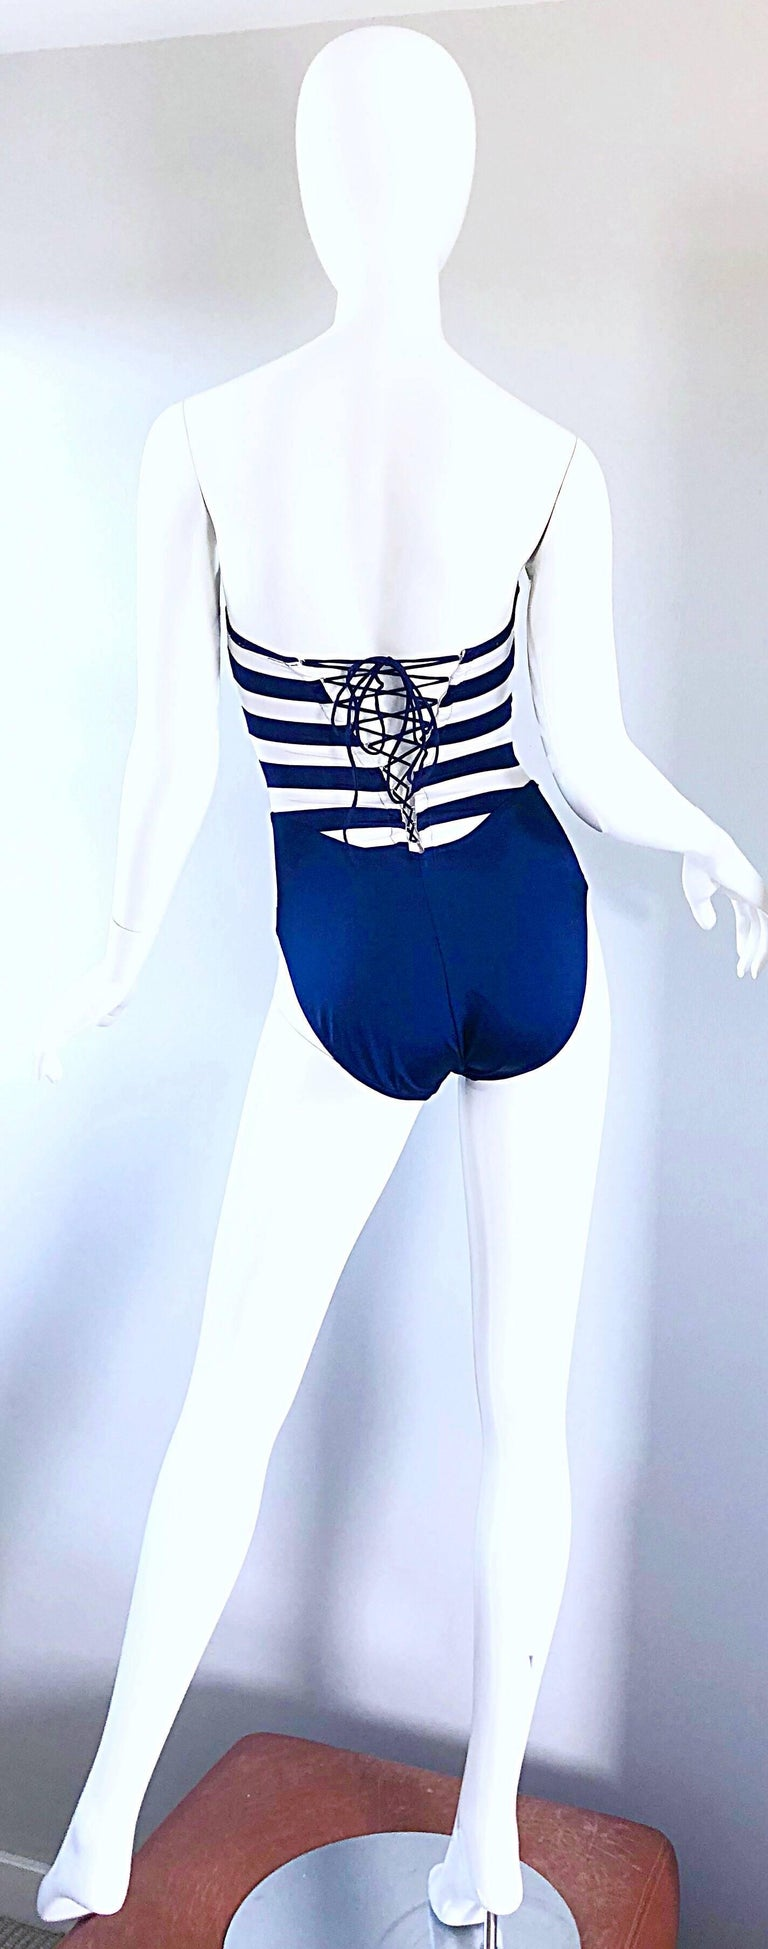 Purple Bill Blass Navy Blue and White Striped Cut - Out One Piece Swimsuit, 1990s  For Sale